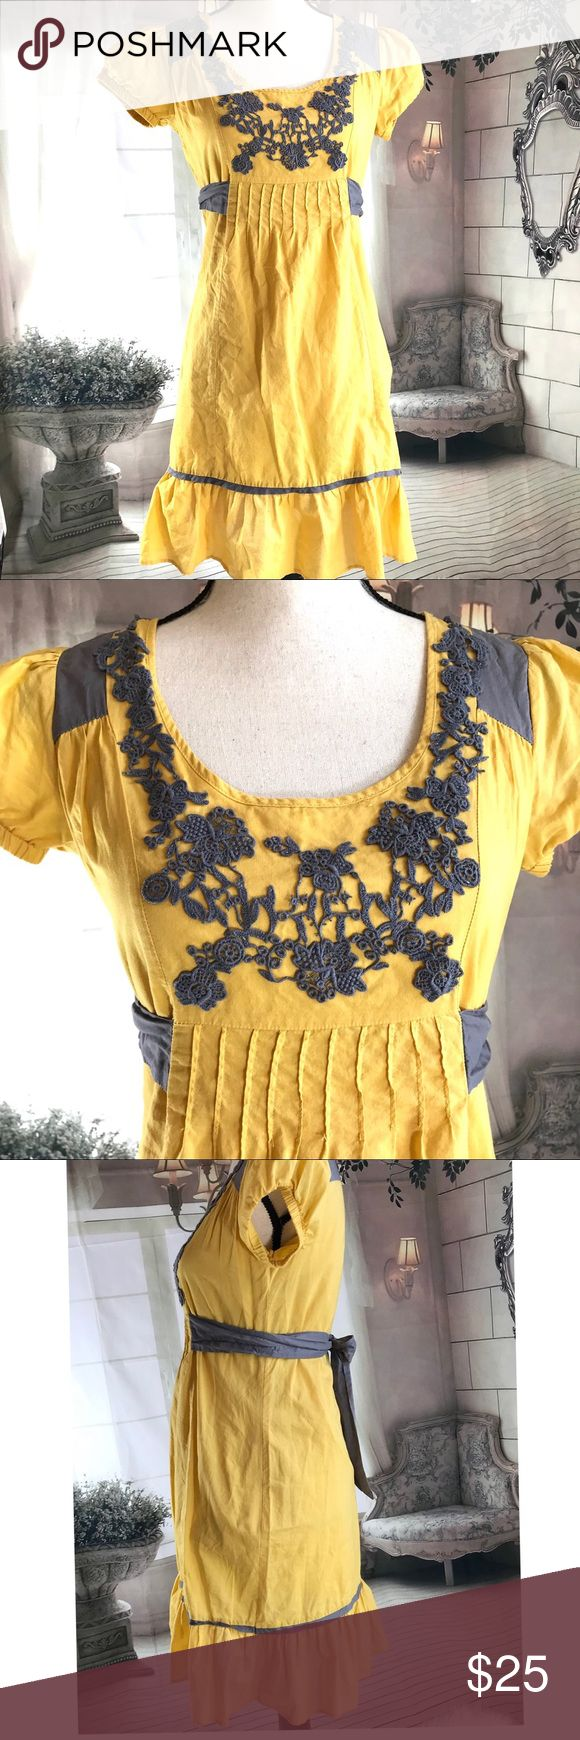 Sam & Max dress Boho Style dress with cute embroidery and ruffled hem. Mustard yellow and Gray colored. Sam & Max Dresses